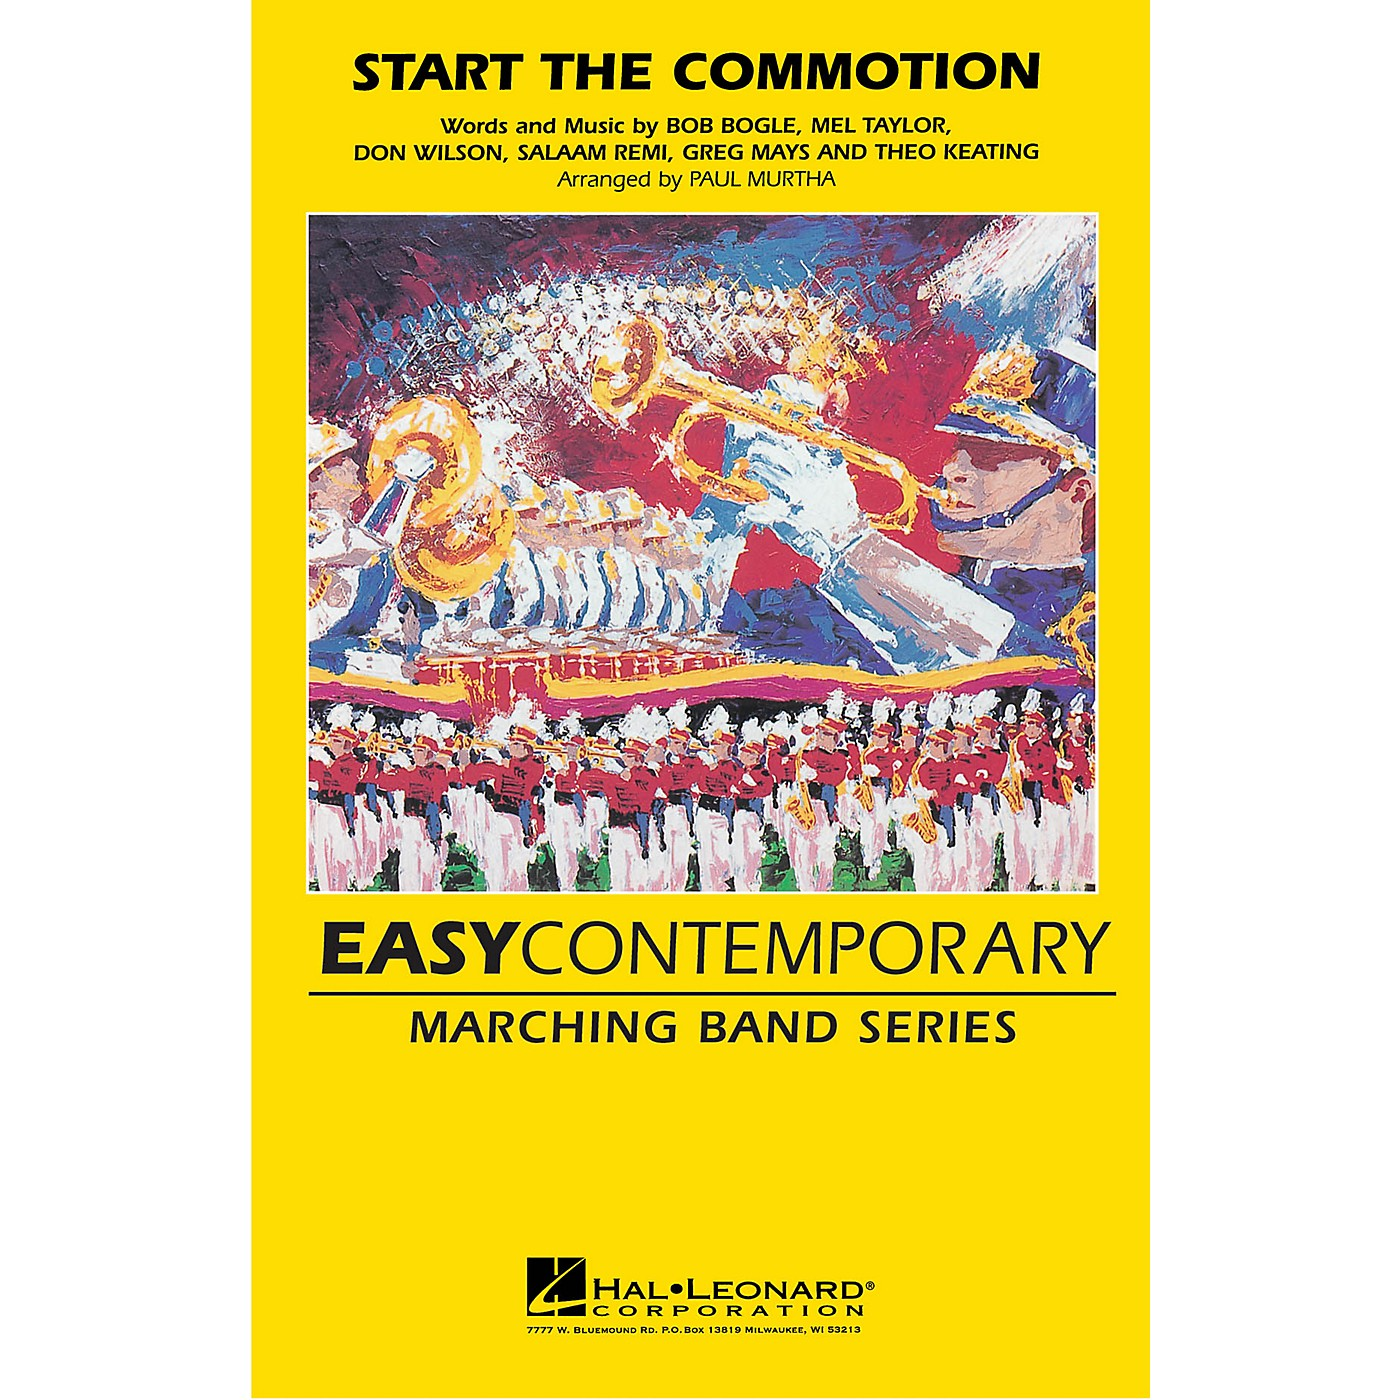 Hal Leonard Start the Commotion Marching Band Level 2-3 by The Wiseguys Arranged by Paul Murtha thumbnail